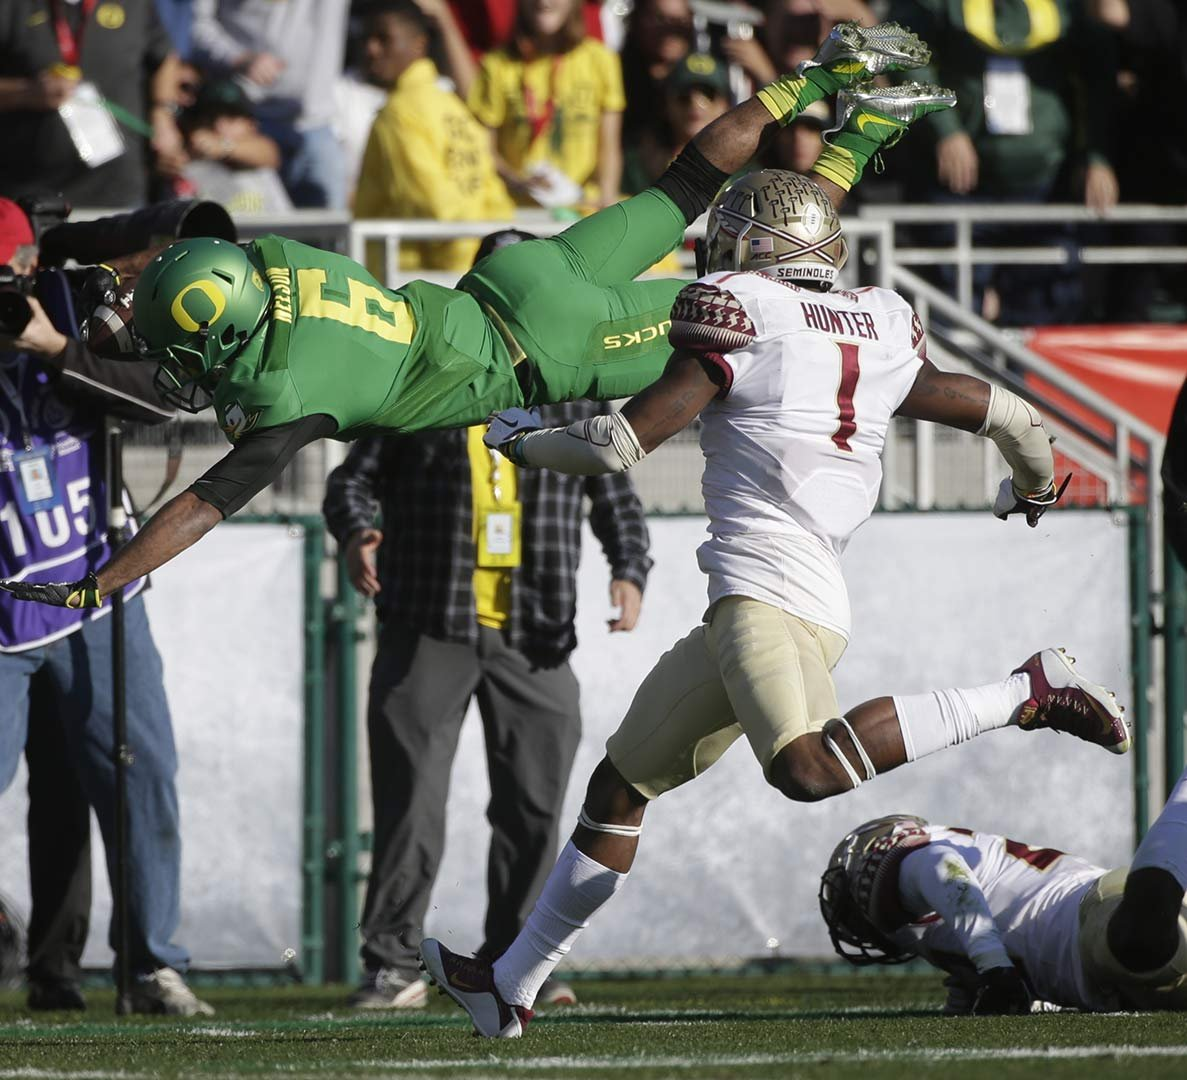 Oregon wide receiver Charles Nelson, left, dives over Florida State safety Tyler Hunter during the first half of the Rose Bowl NCAA college football playoff semifinal, Thursday, Jan. 1, 2015 in Pasadena, Calif. (AP Photo/Jae C. Hong)